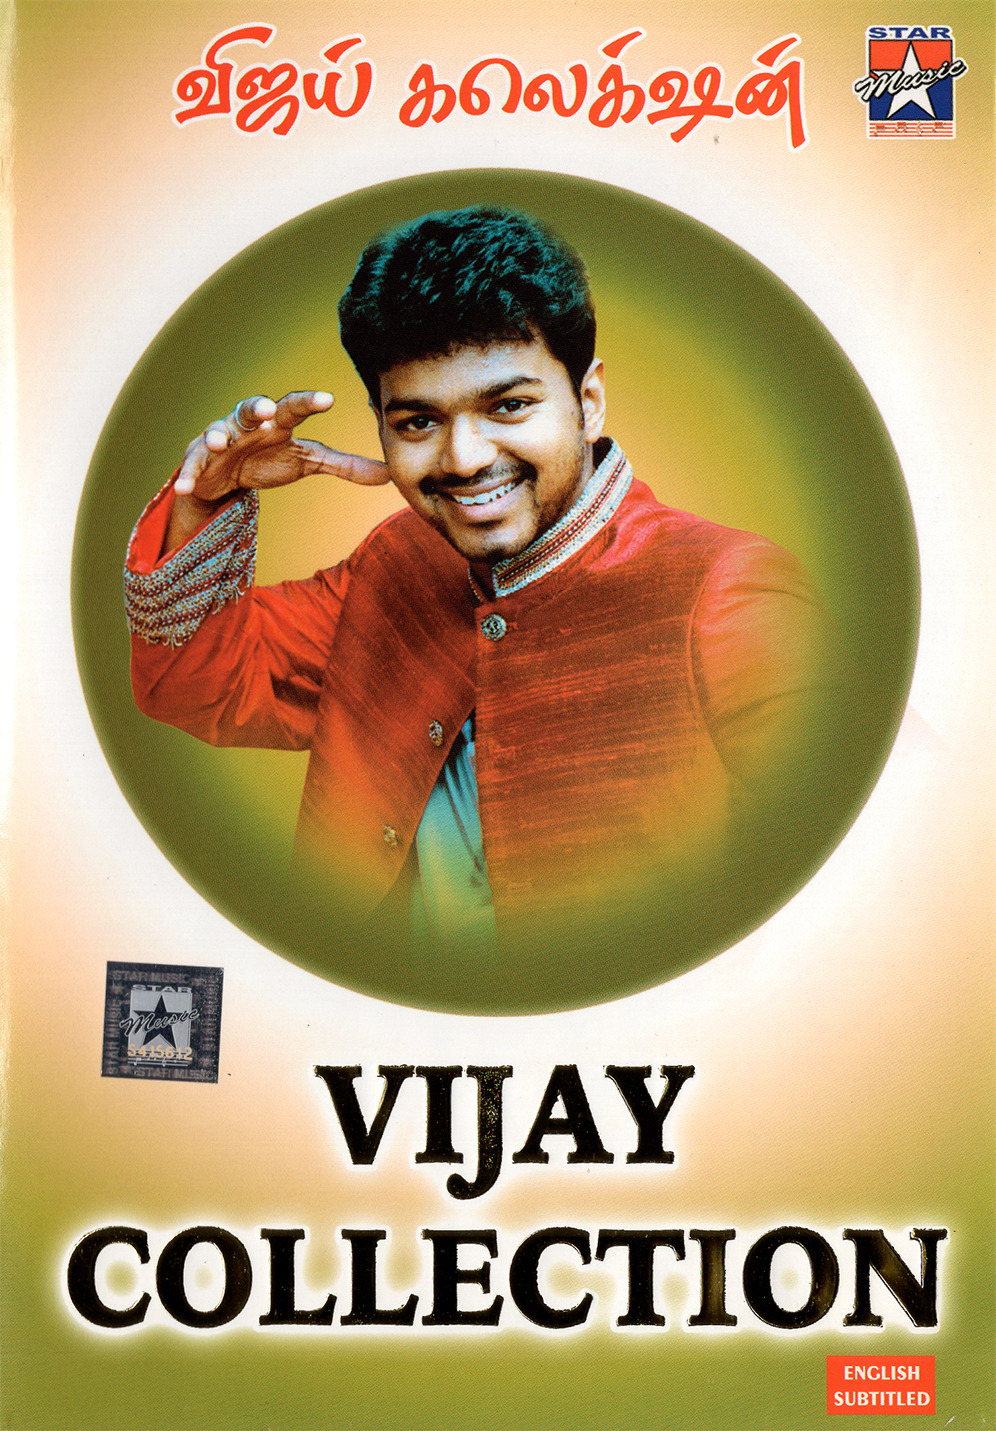 Vijay Collection